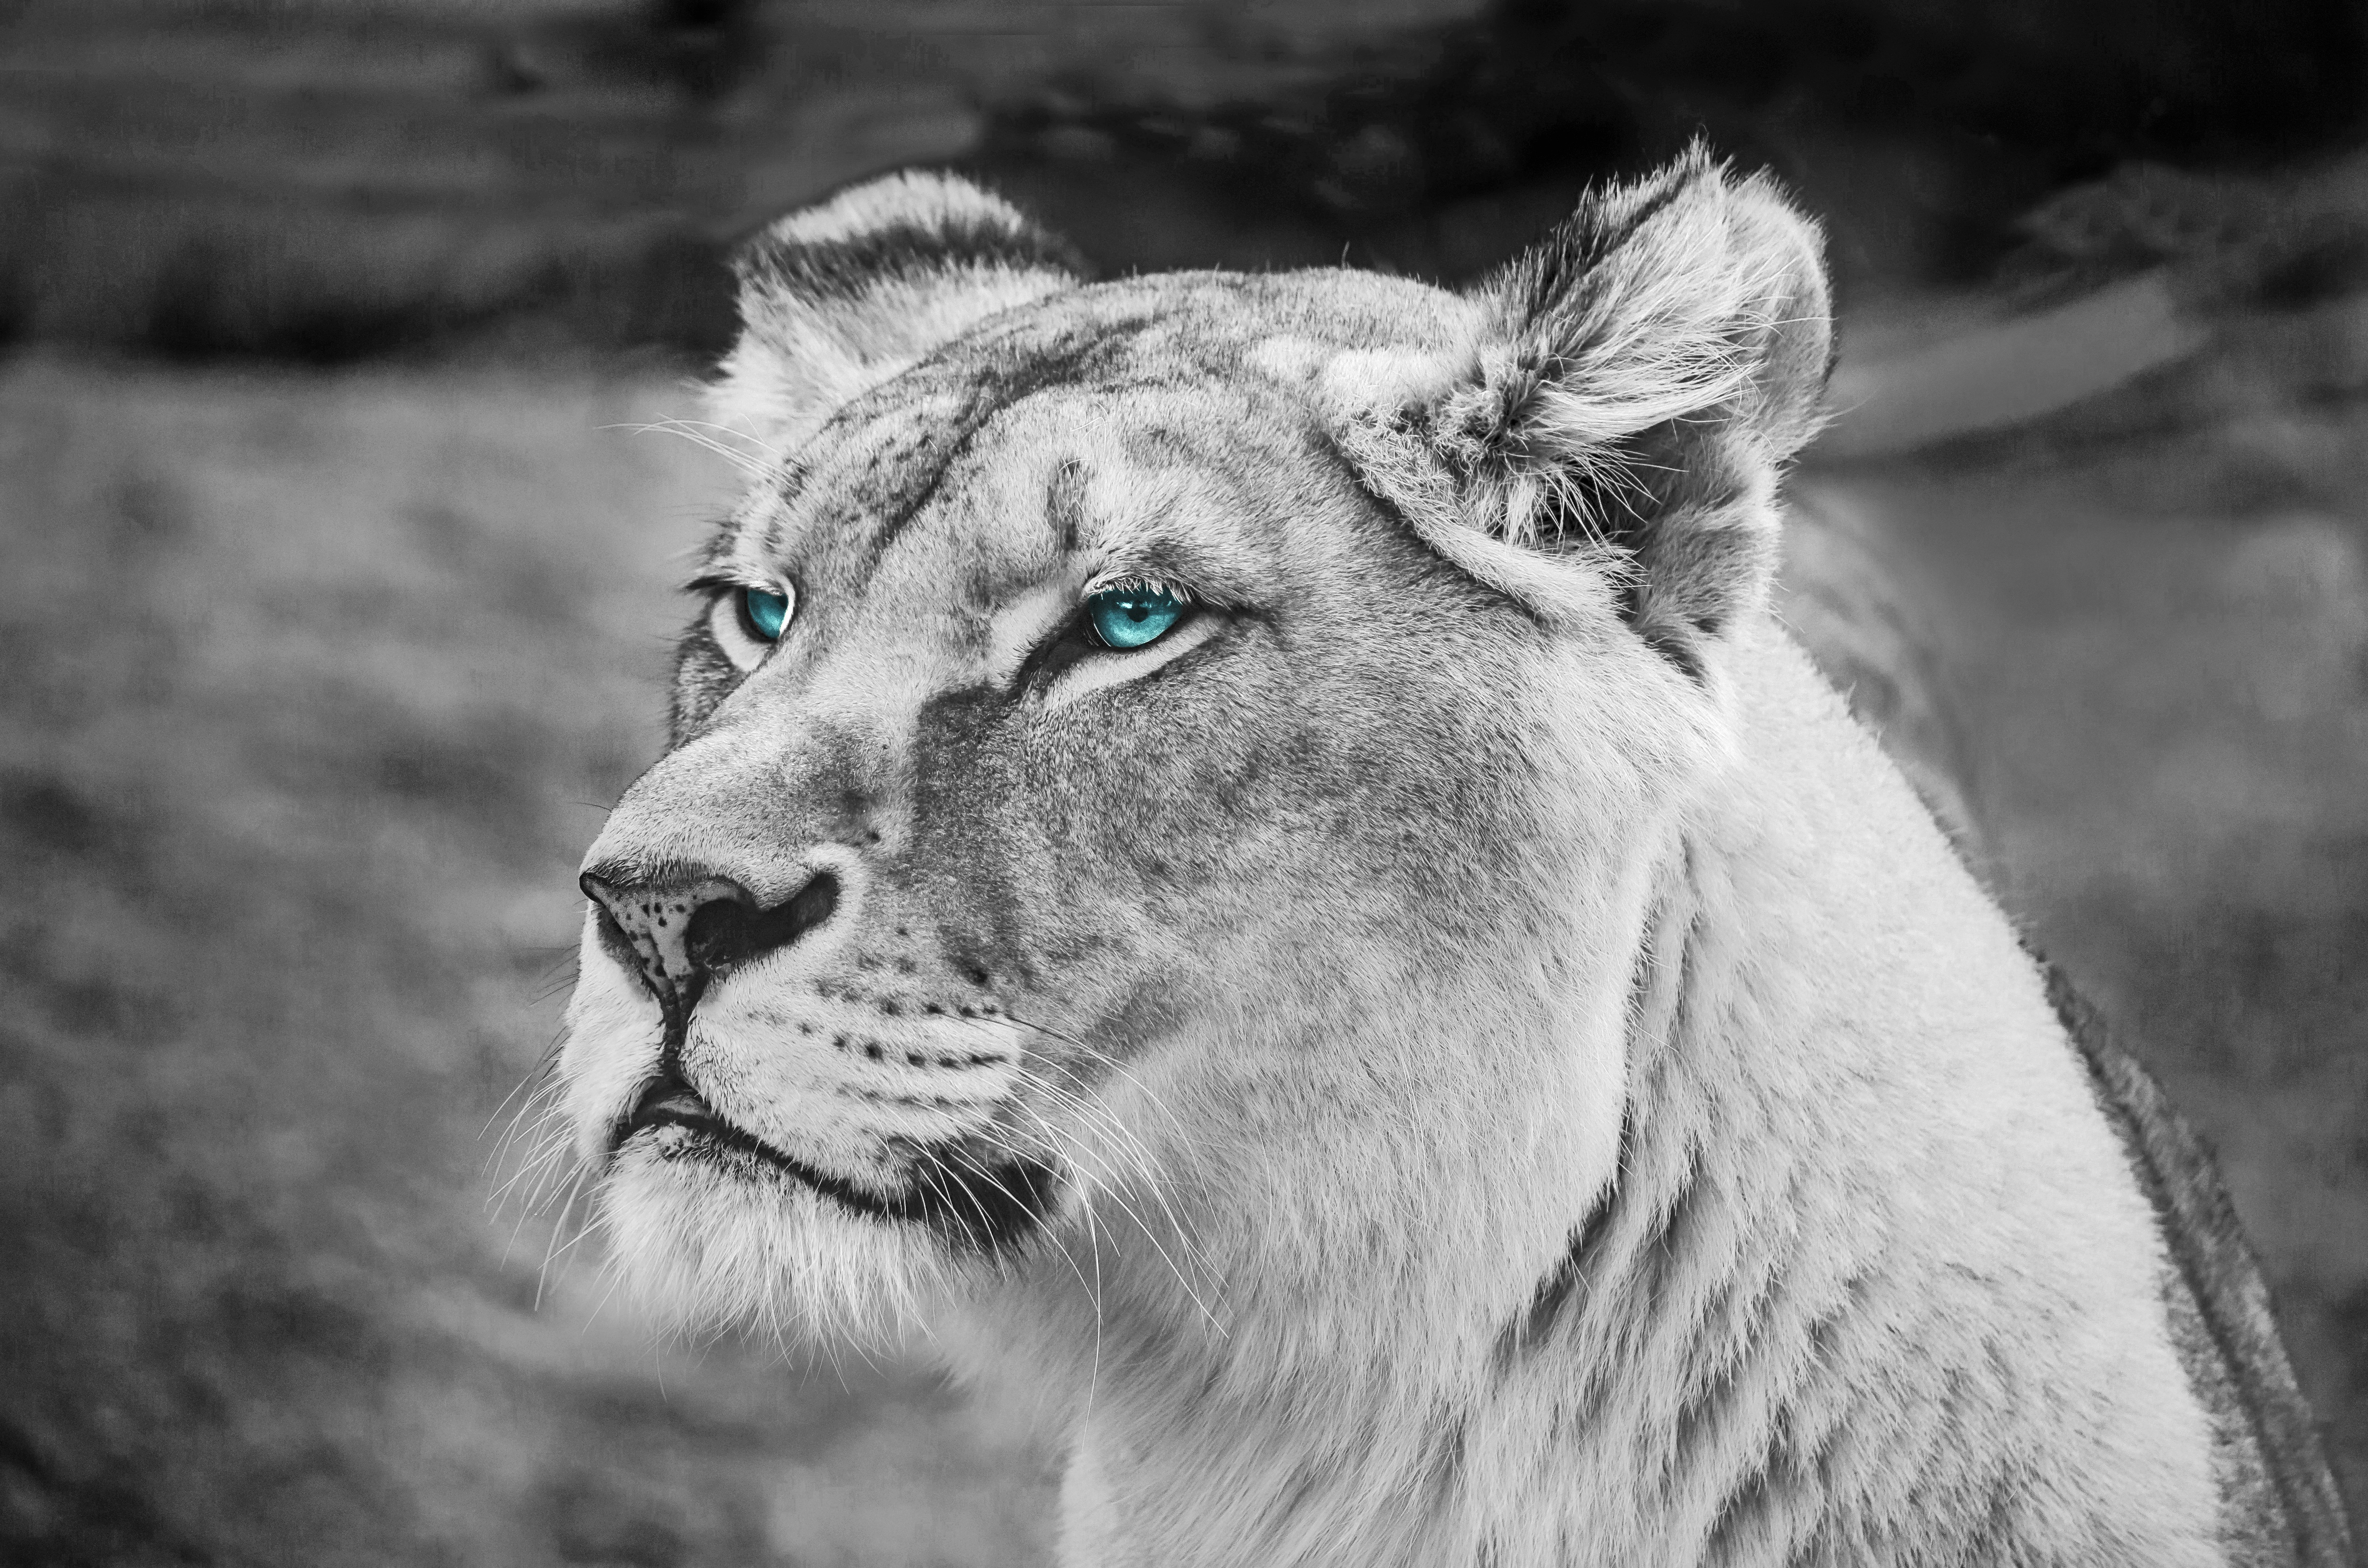 59231 download wallpaper Animals, Lioness, Muzzle, Eyes, Sight, Opinion, Wildlife, Africa screensavers and pictures for free